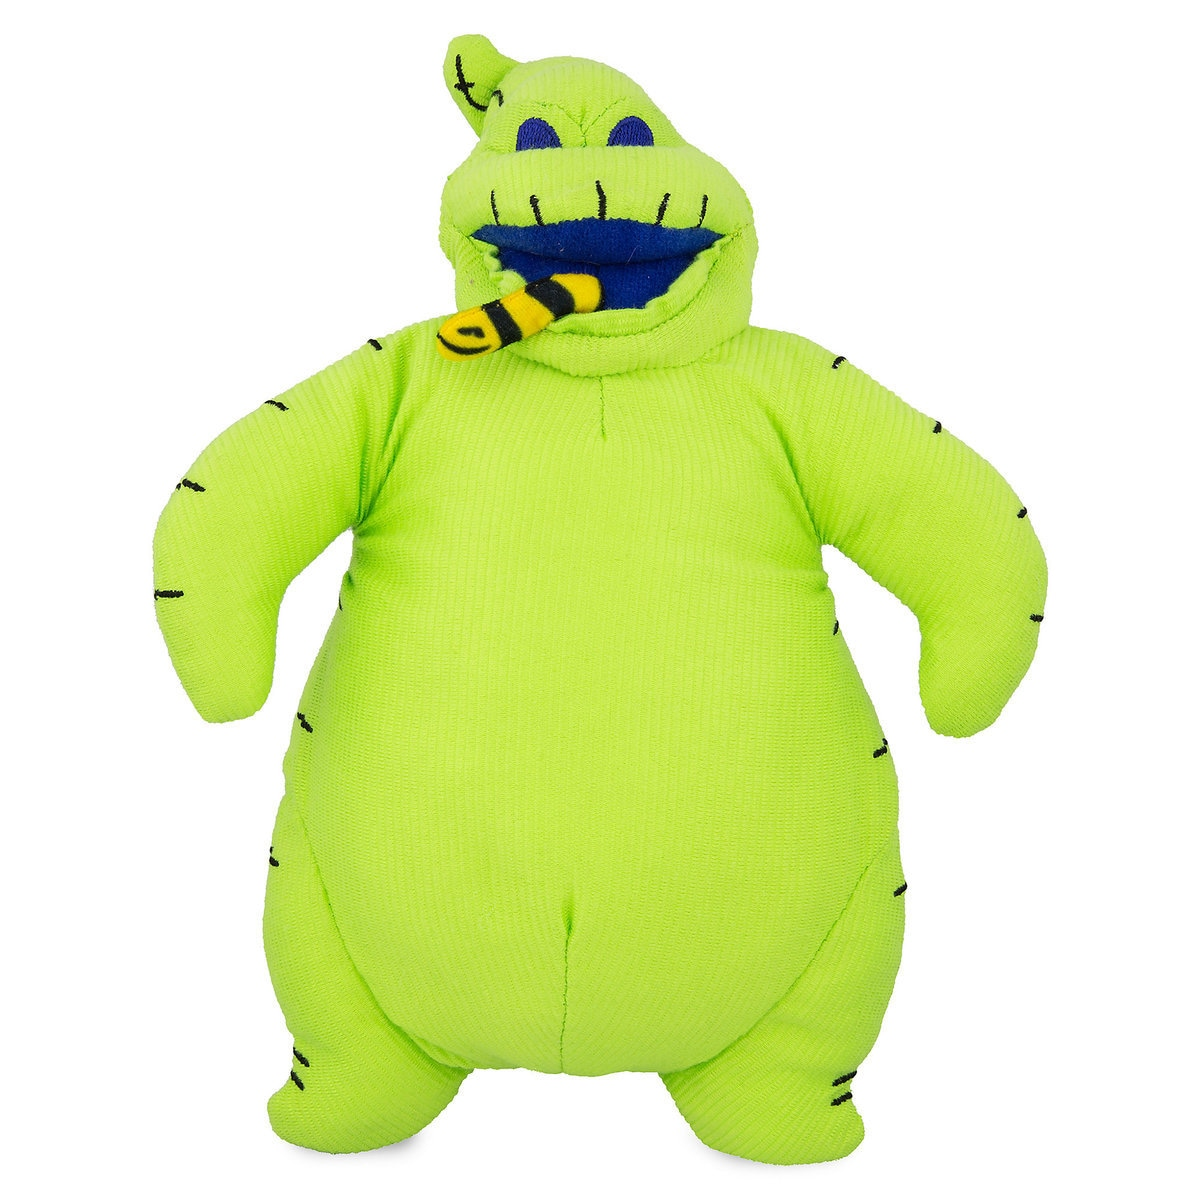 product image of oogie boogie plush the nightmare before christmas 1 - The Nightmare Before Christmas Oogie Boogie